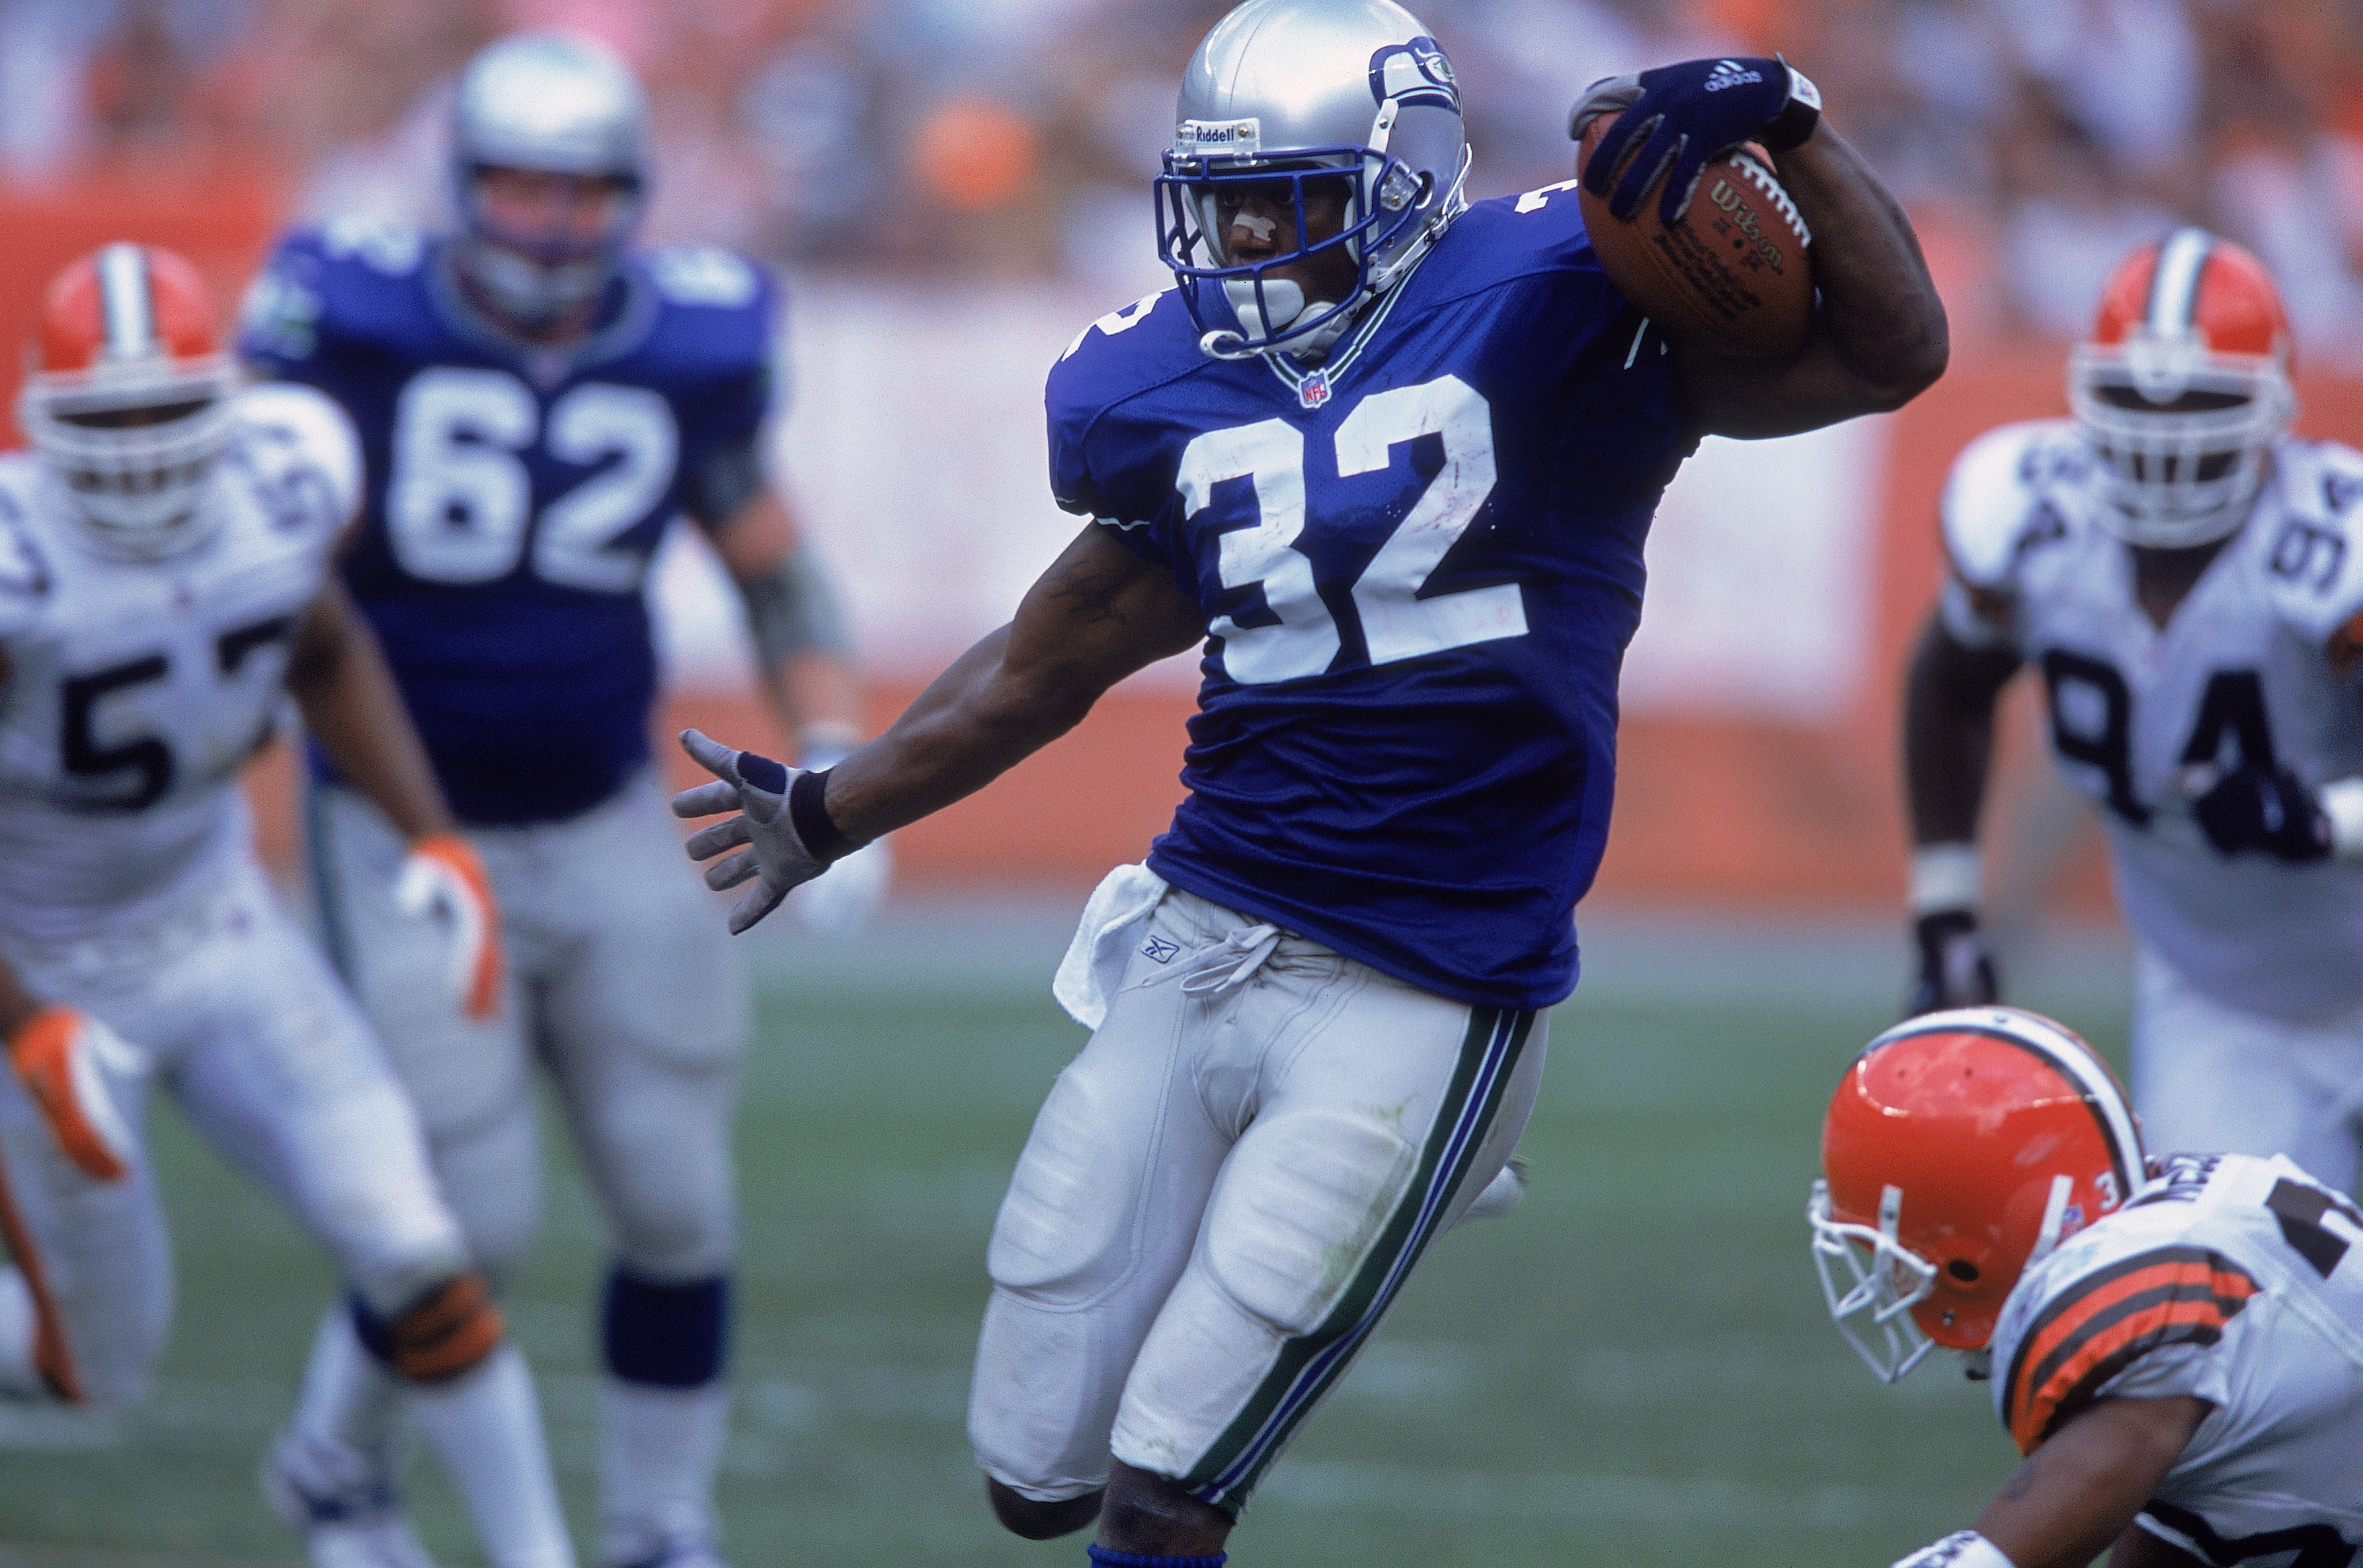 9 Sep 2001:  Ricky Watters #32 of the Seattle Seahawks running with the ball during the game against the Cleveland Browns at the Browns Stadium in Cleveland, Ohio. The Seahawks defeated the Browns 9-6.Mandatory Credit: Tom Pidgeon  /Allsport